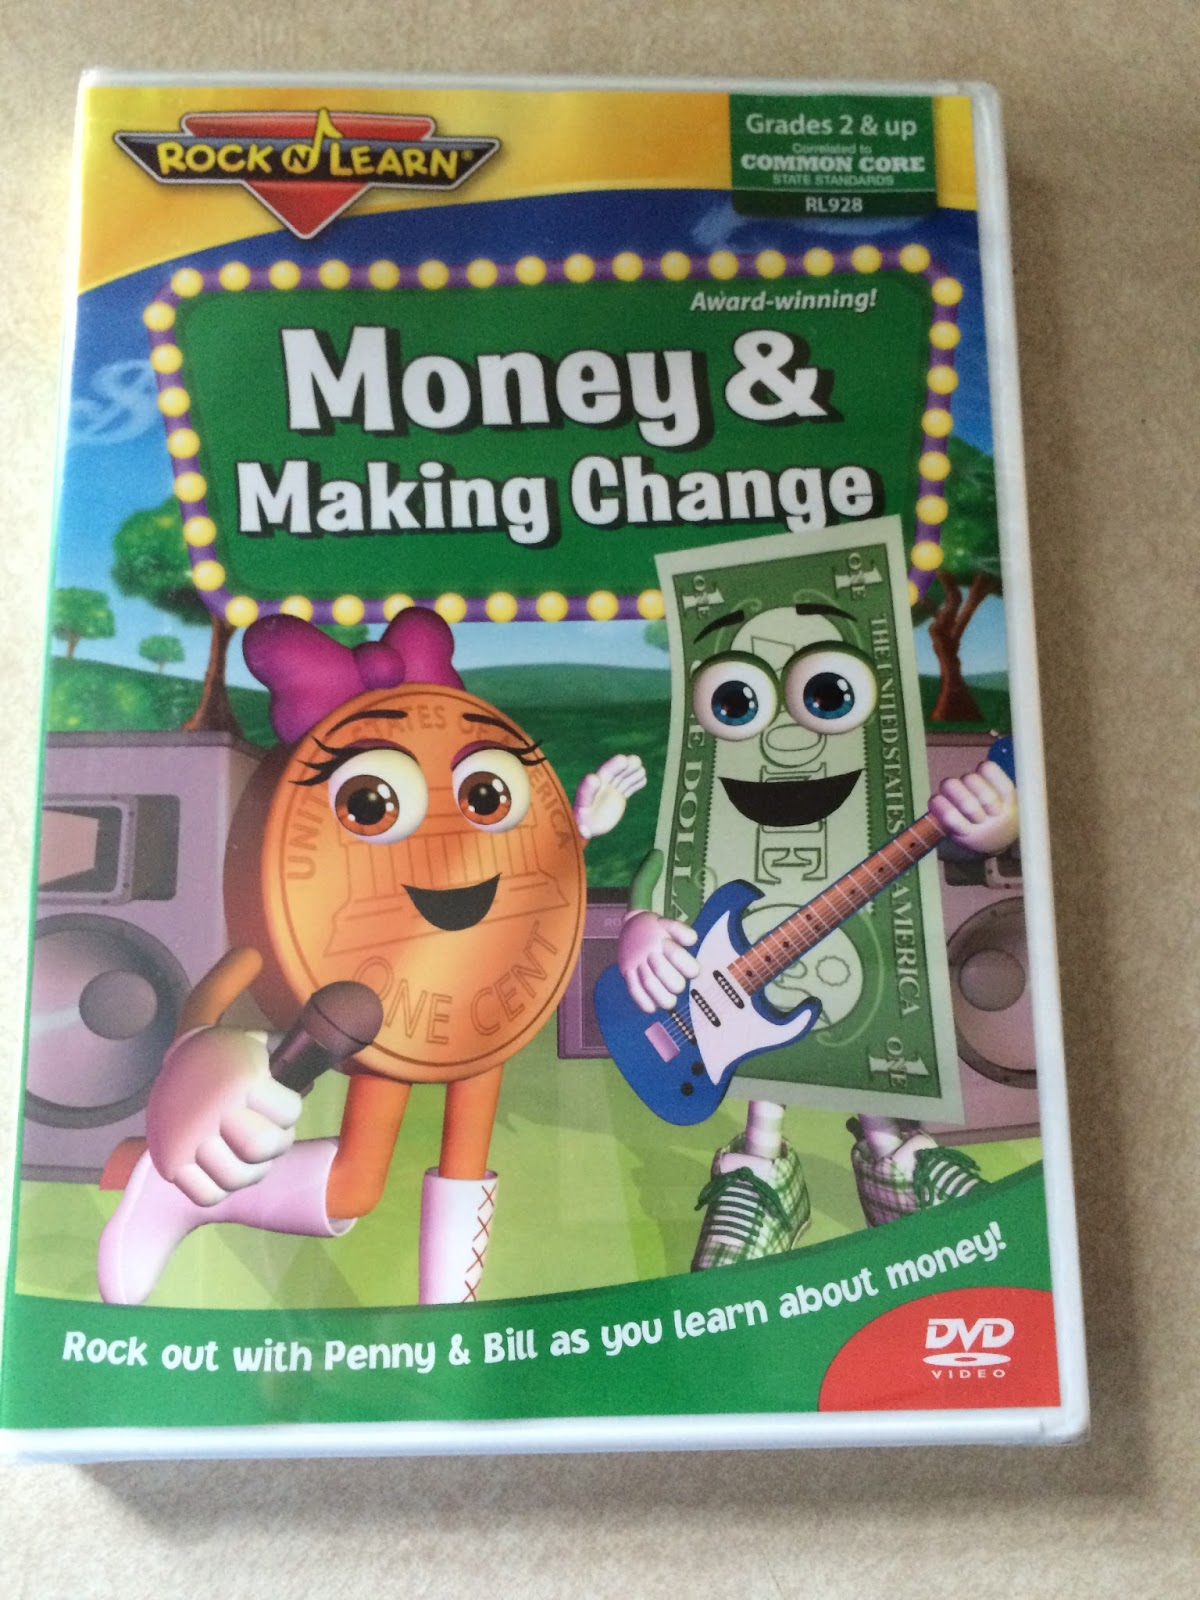 Learning Math With Rock N Learn Review Giveaway